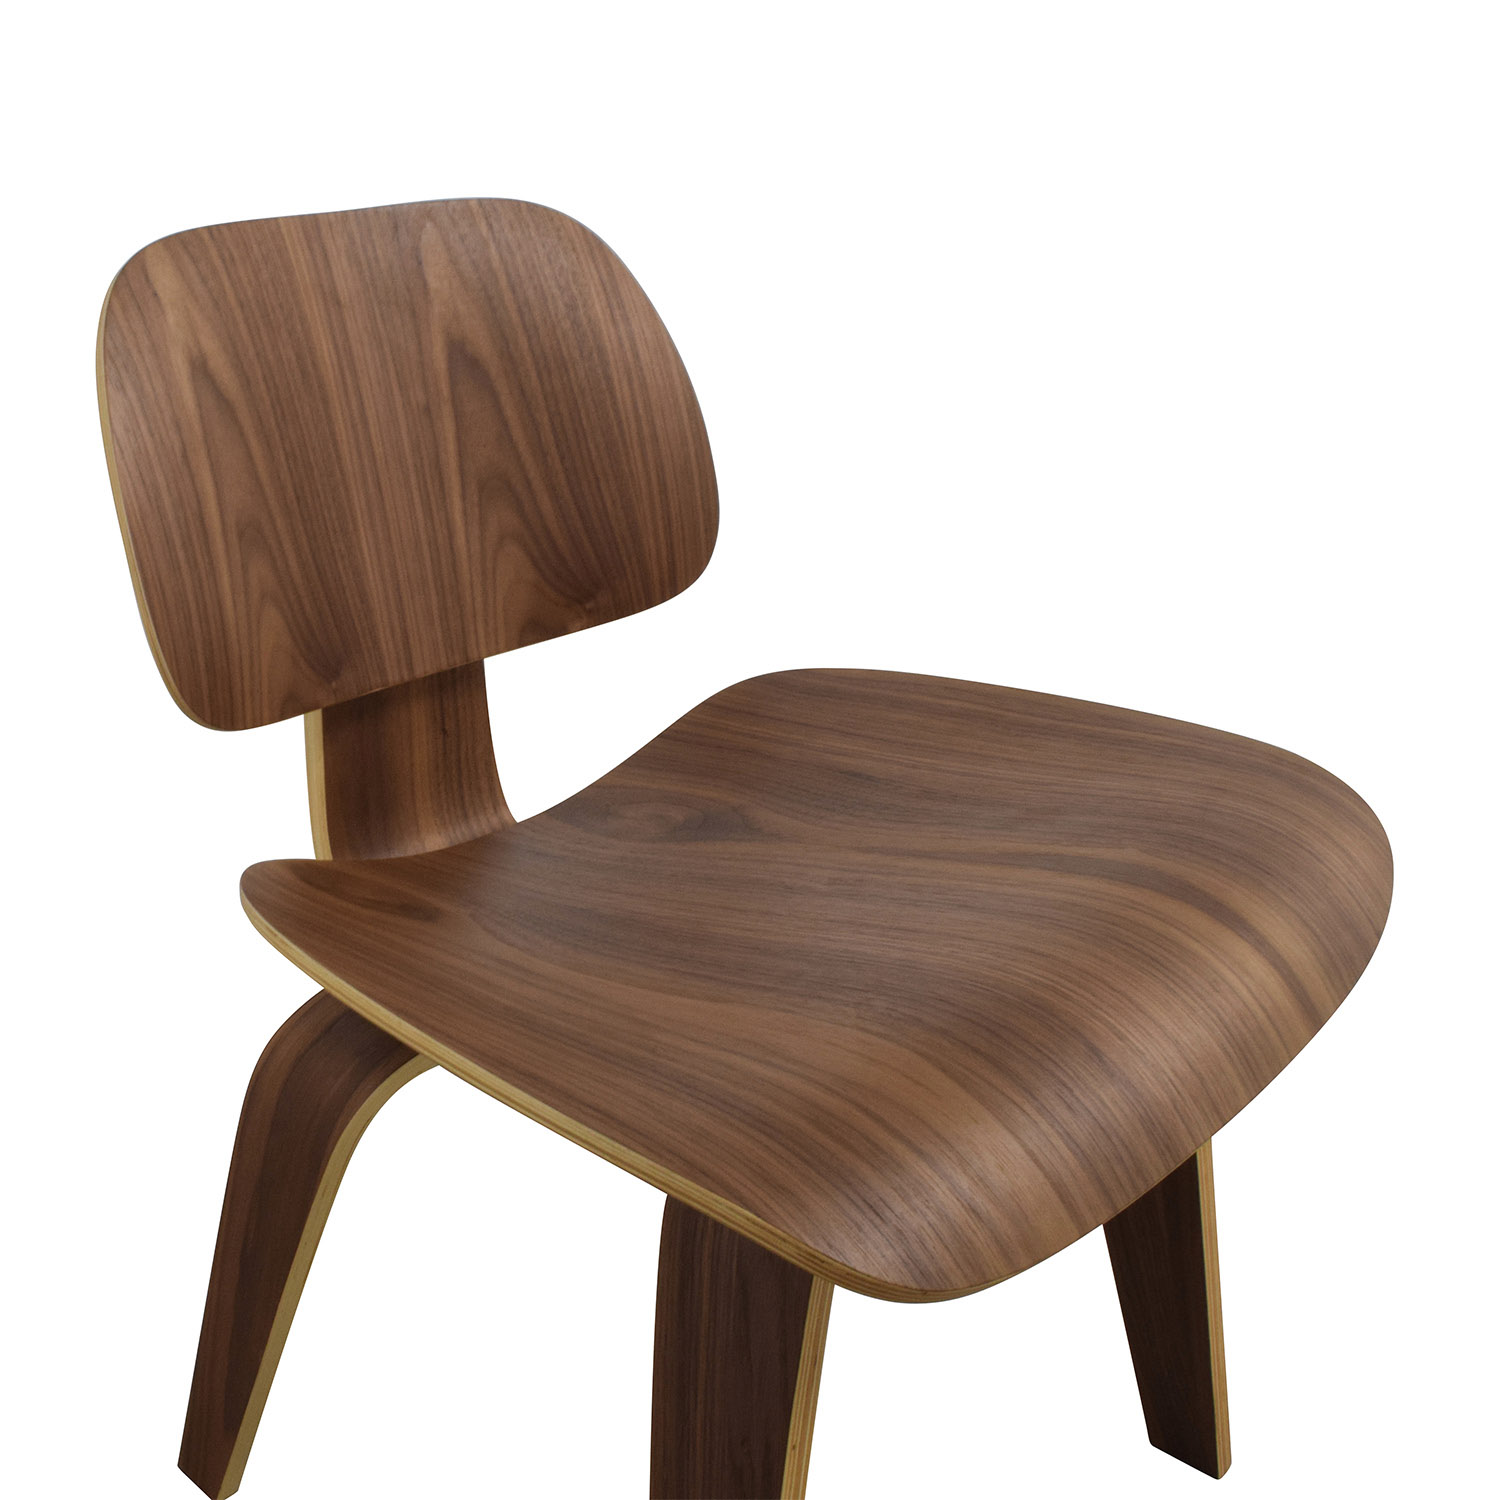 InMod InMod Plywood Dining Chair with Wood Legs price